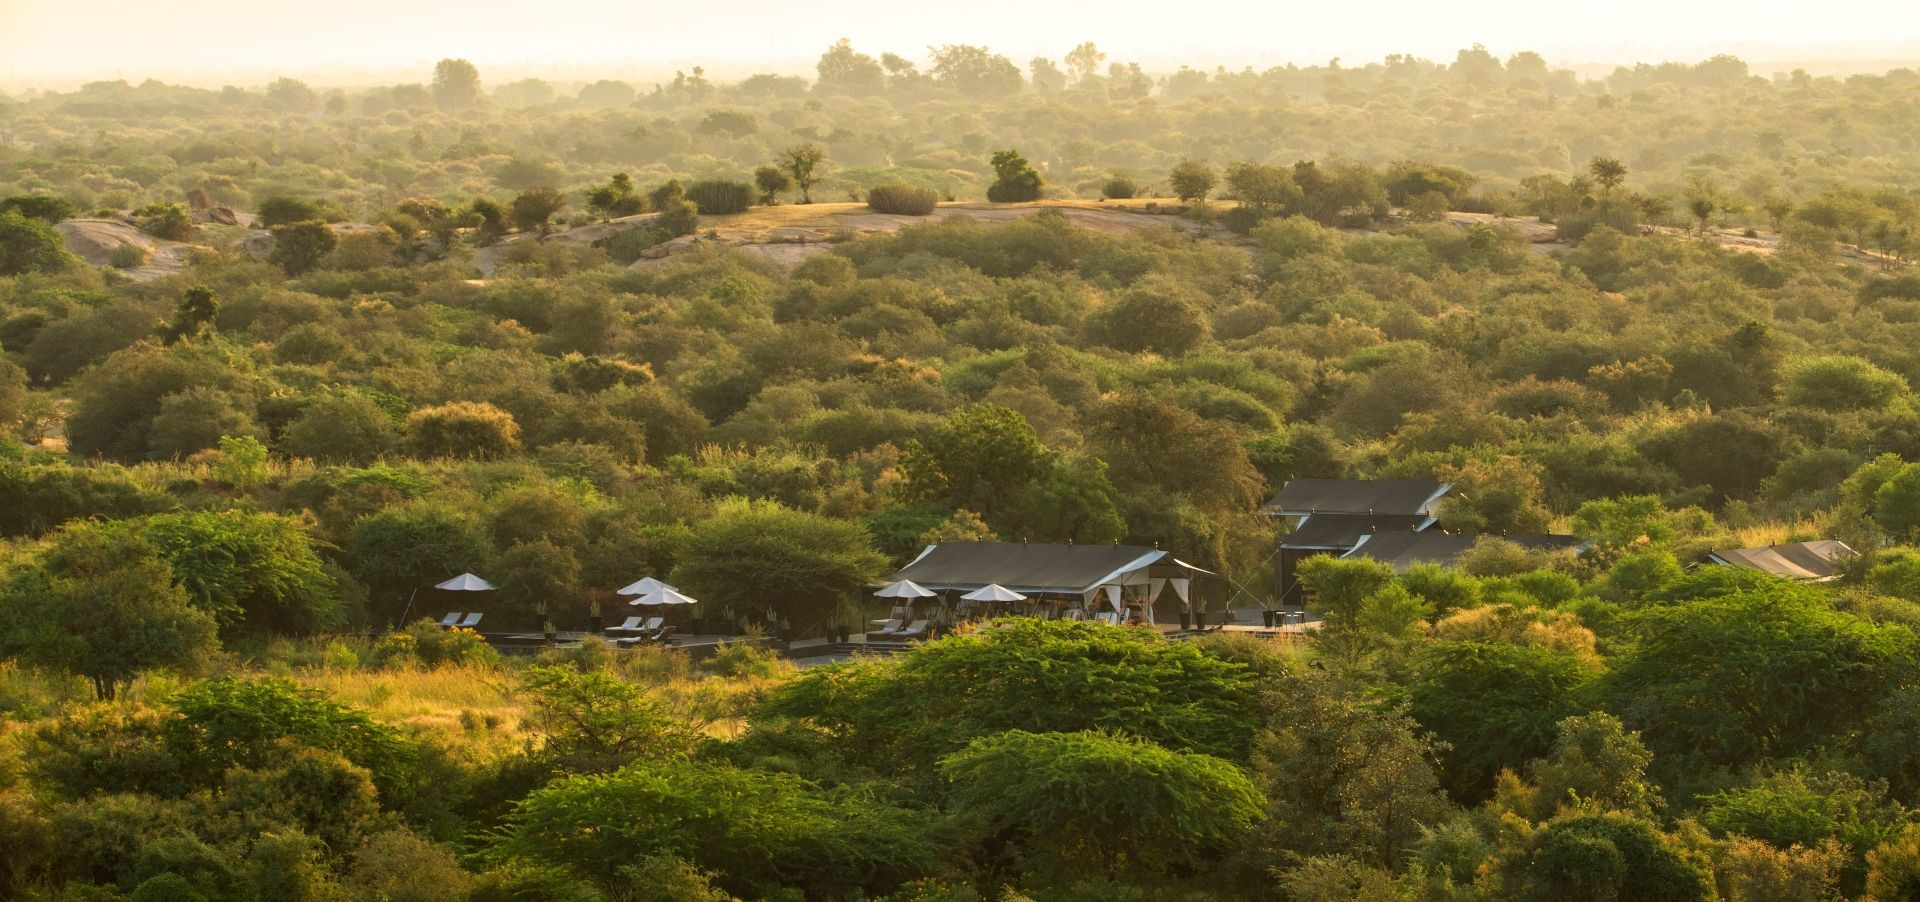 SUJAN Jawai – The camp in the landscape